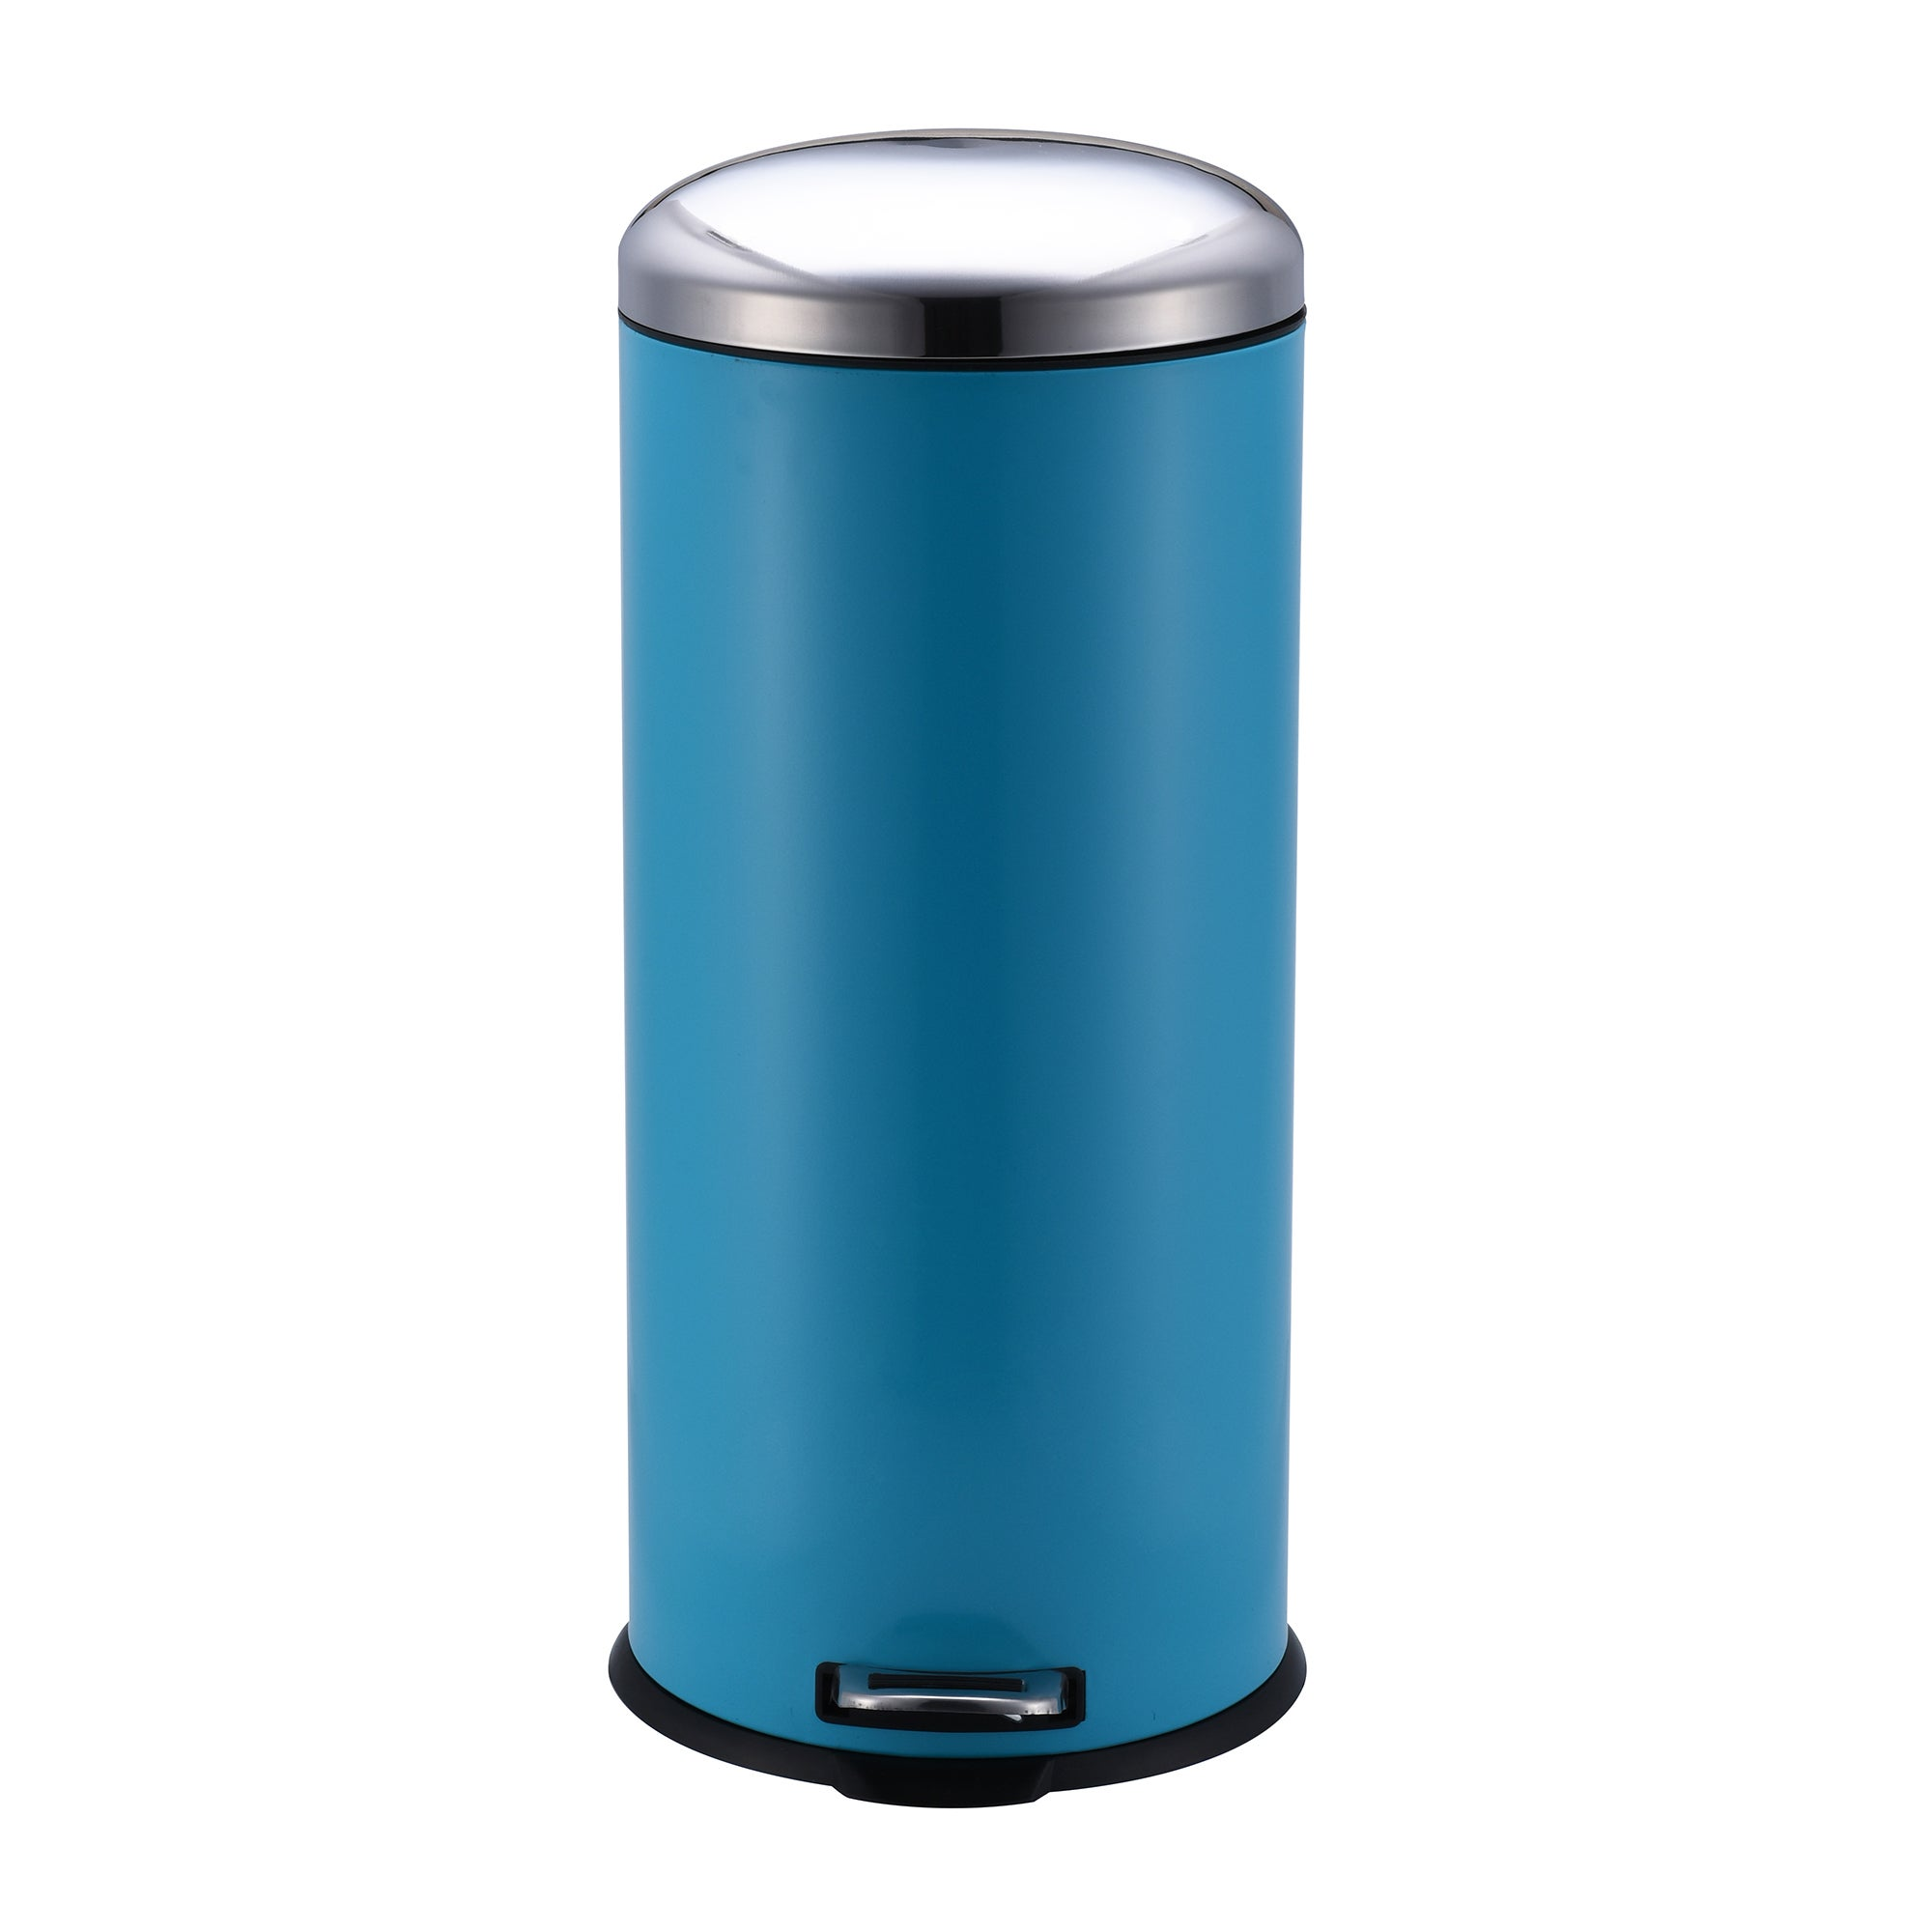 Image of 30 Litre Teal Pedal Bin Multi Coloured